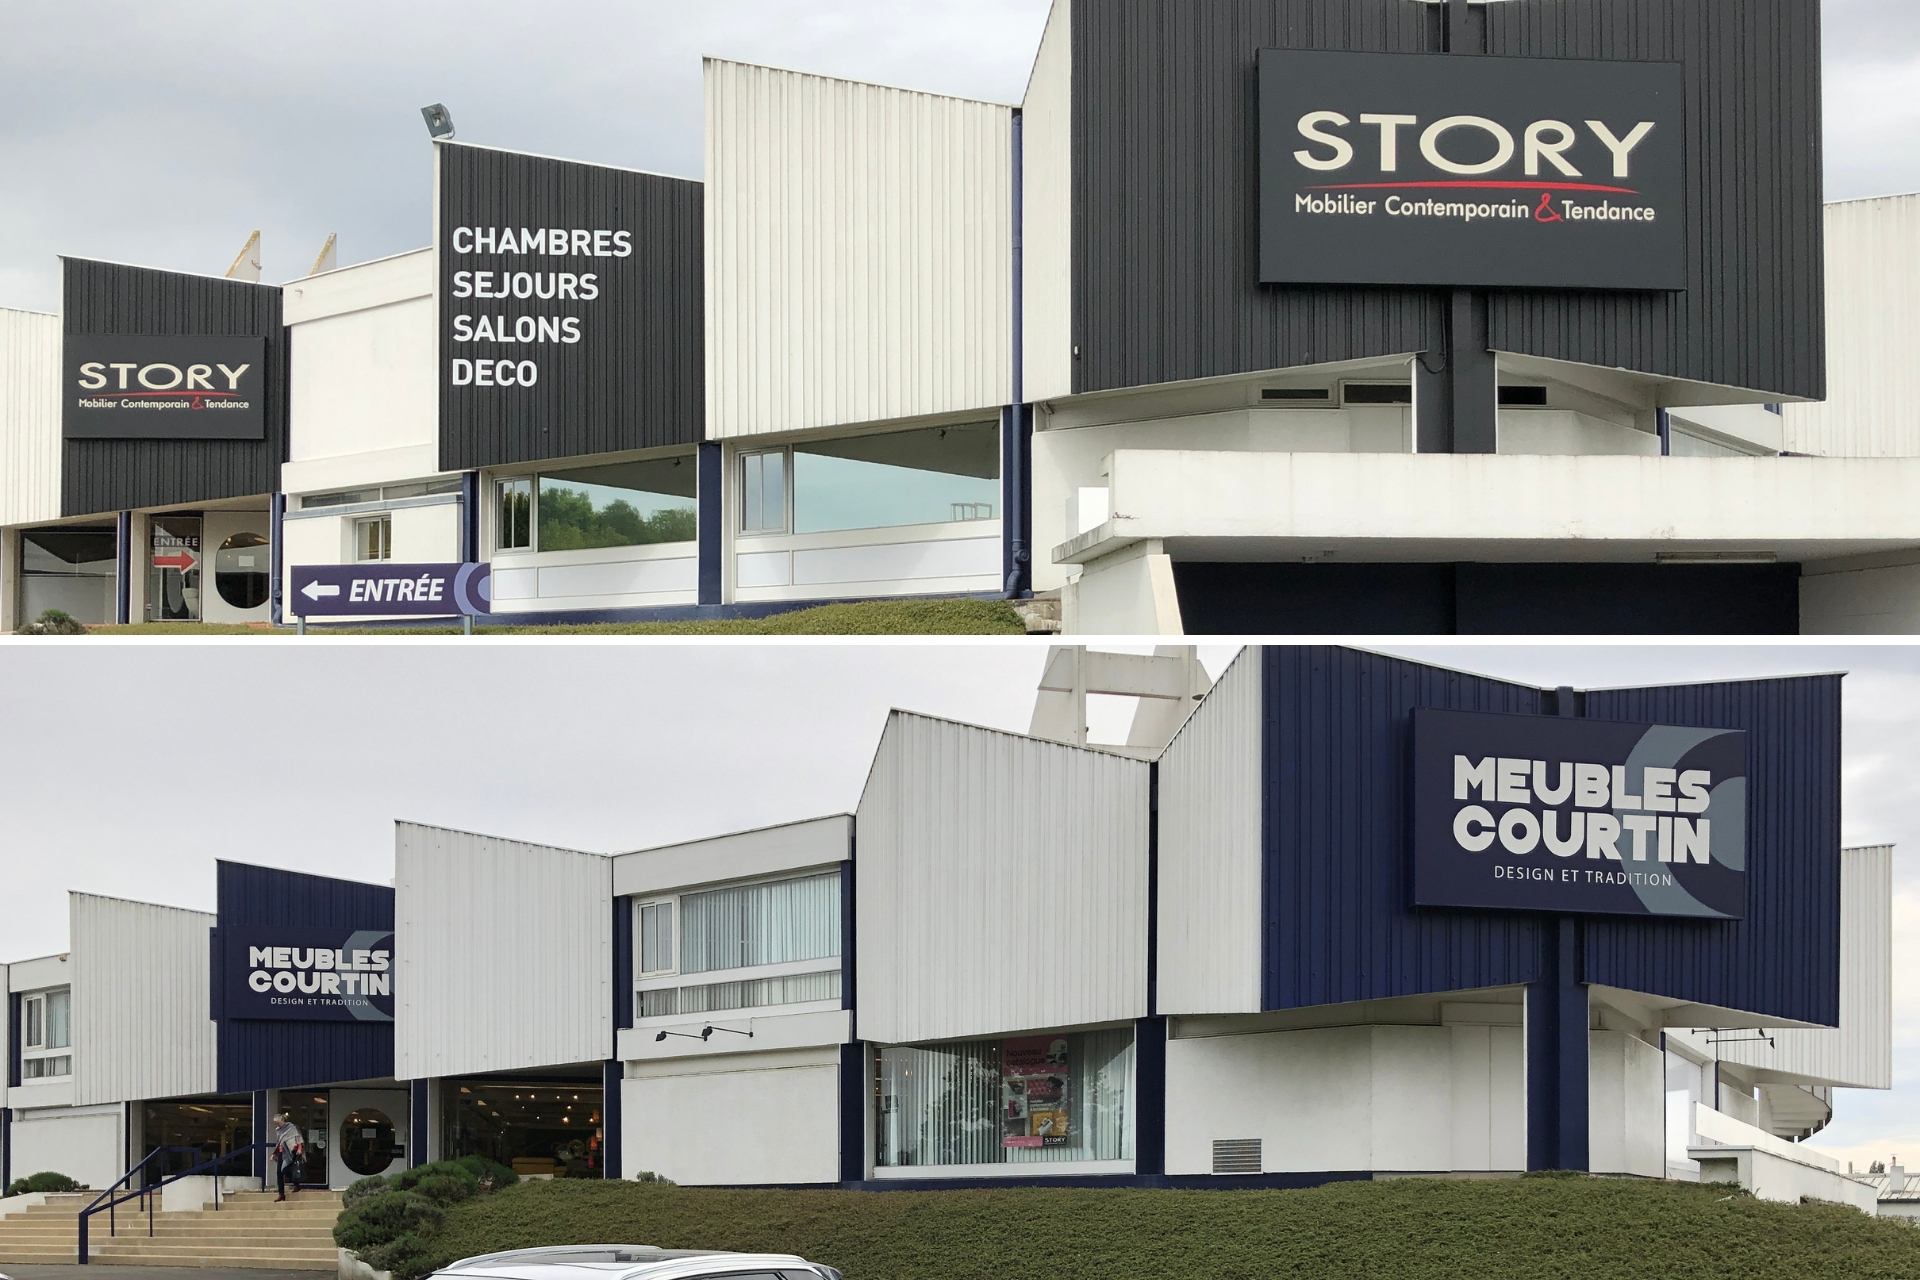 Magasin De Meuble Le Mans Story Mobilier Contemporain Et Dedans Magasin De Meubles Le Mans Idees Conception Jardin Idees Conception Jardin